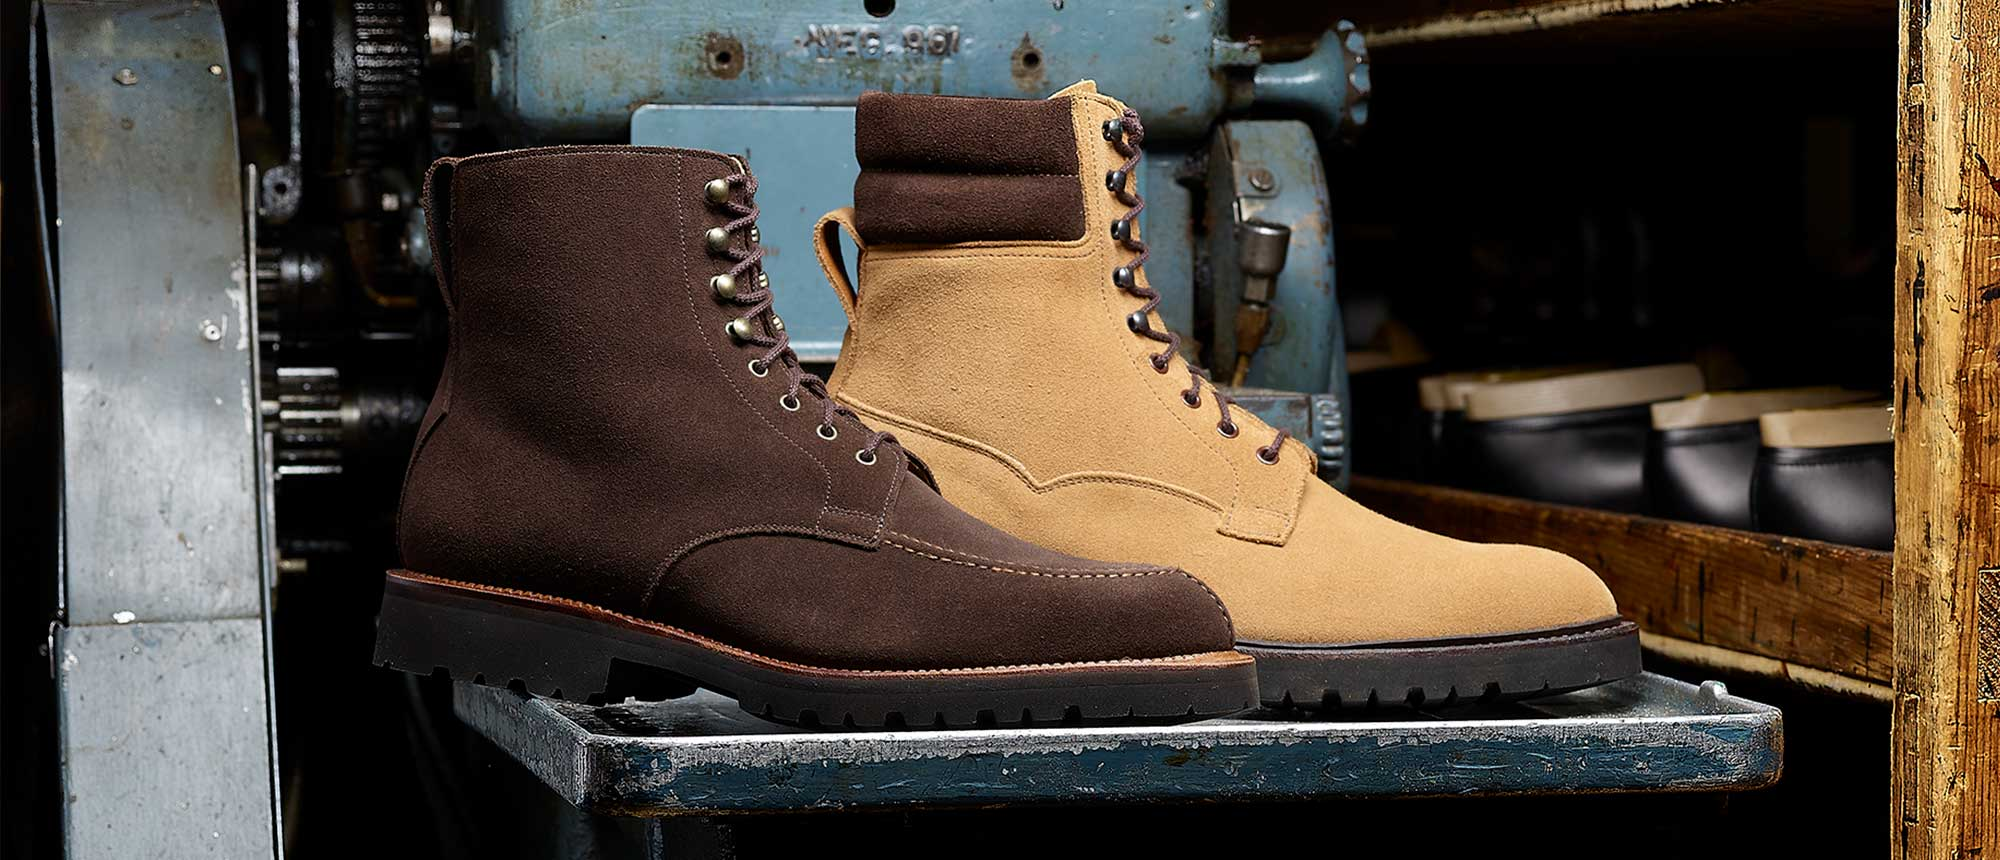 Crockett & Jones - Introducing our AW20 Collection